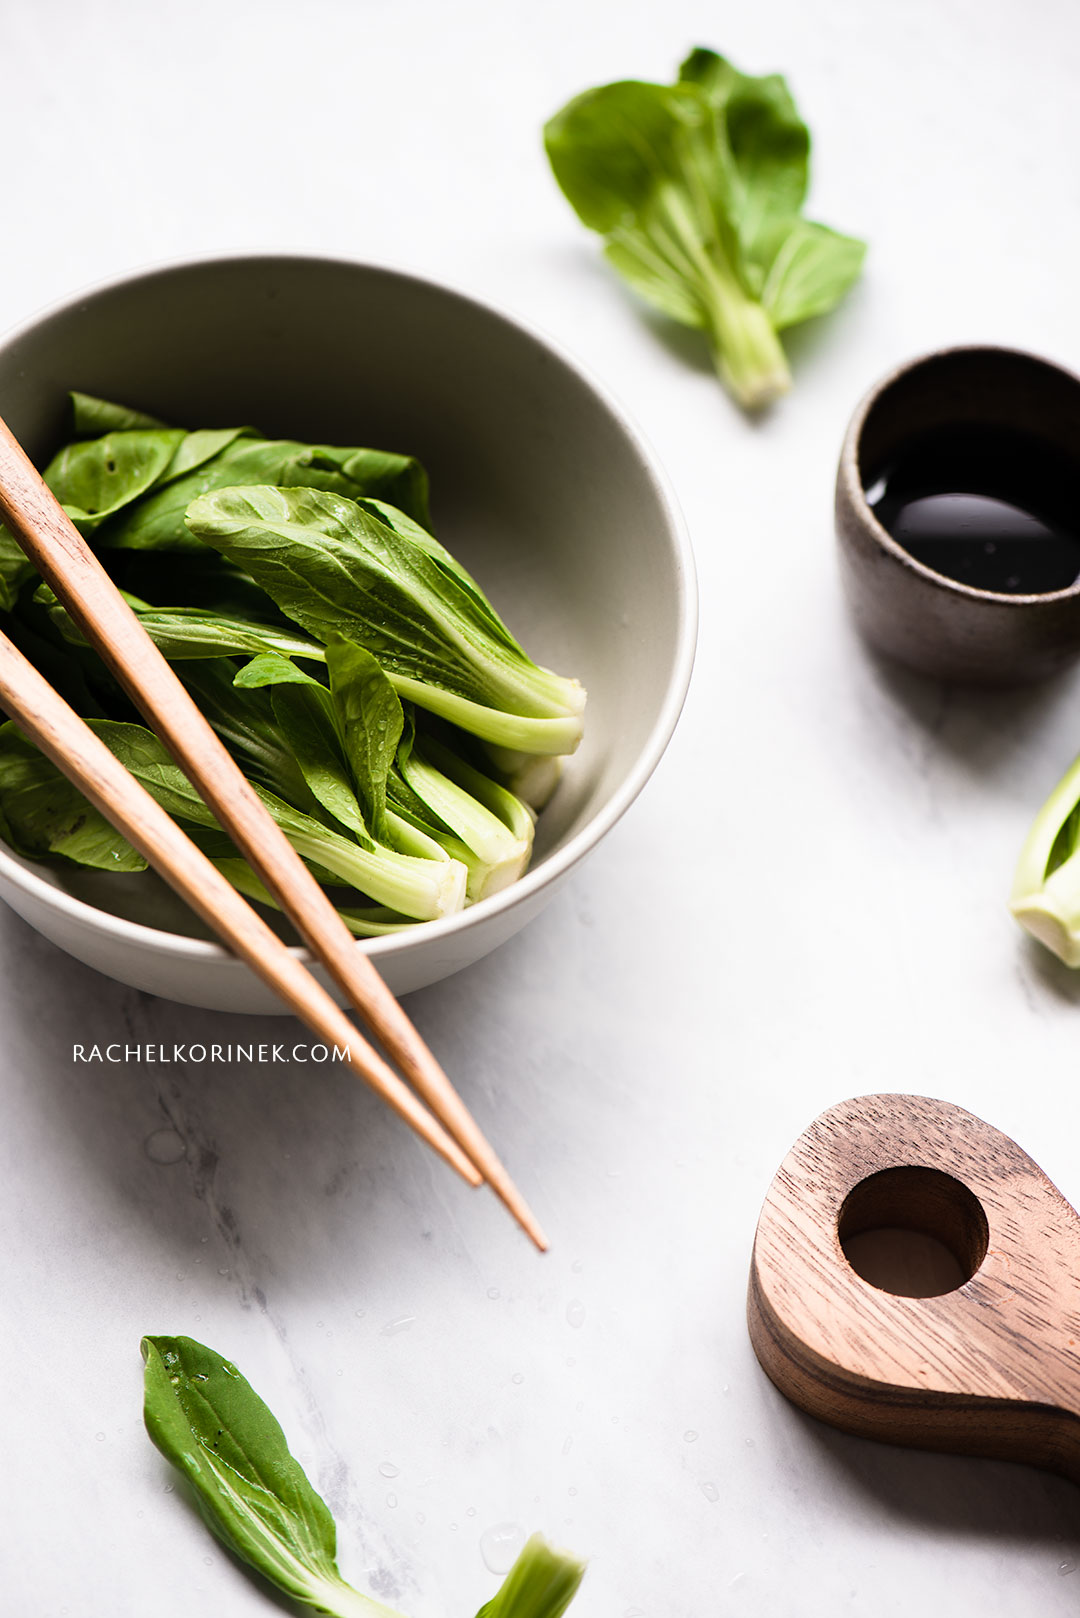 Rachel Korinek Food Photographer | Baby Bok Choy  Click to check out my latest food photography projects.  #twolovesstudio #beautifulcuisine #foodbloggerpro #foodphotography #learnfoodphotography #foodblogger #learnphotography #foodstyling #lightingtips #naturallight #foodphotographer